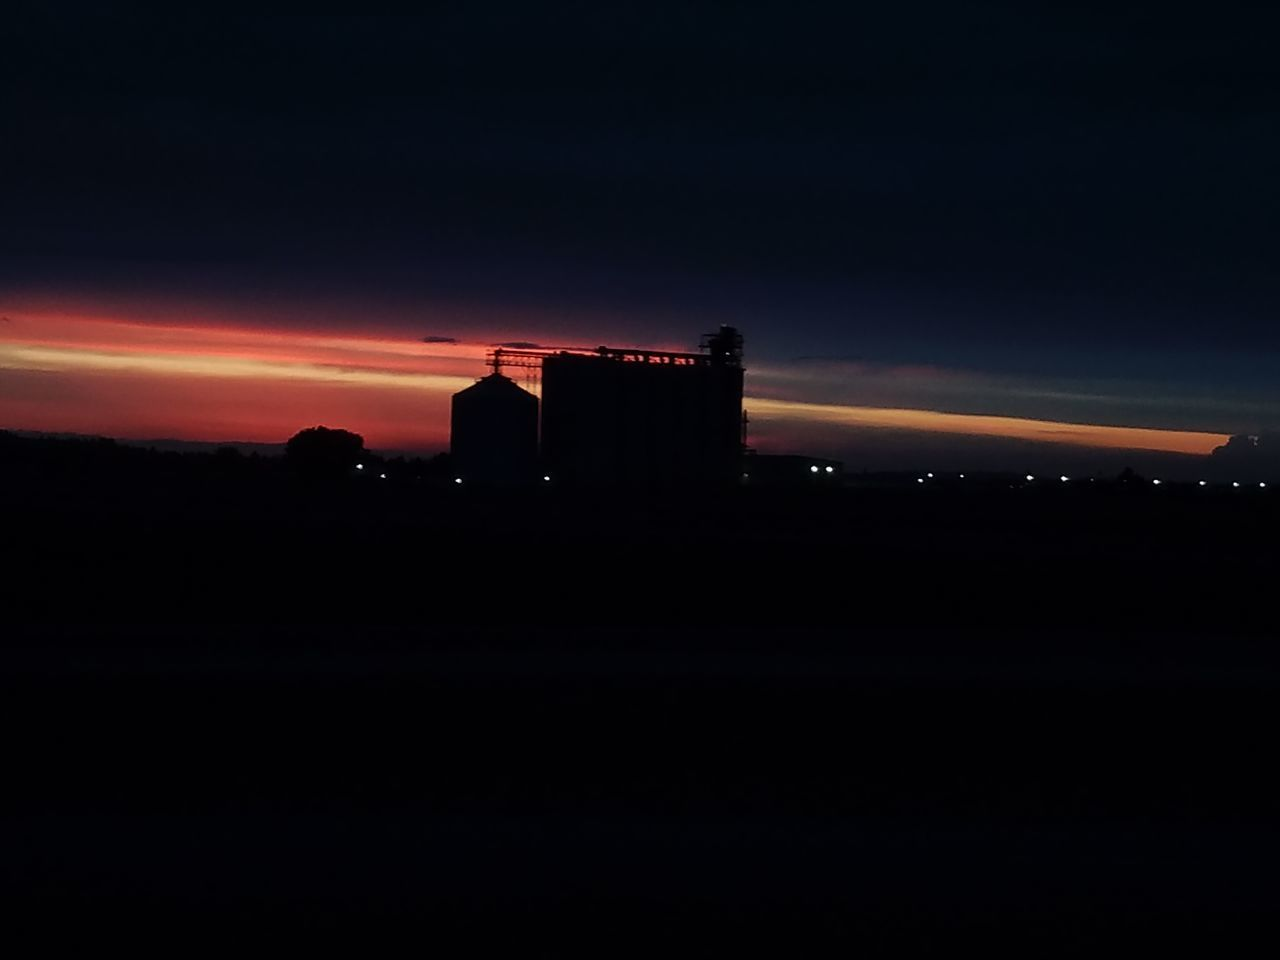 Architecture Bright Building Exterior Built Structure EyeEmNewHere Illuminated Industrial Industrial Landscapes Nature Night No People Outdoors Silhouette Sky Sunset Live For The Story Cellphone Photography Out Of The Box Place Of Heart No Edit/no Filter Cellphone